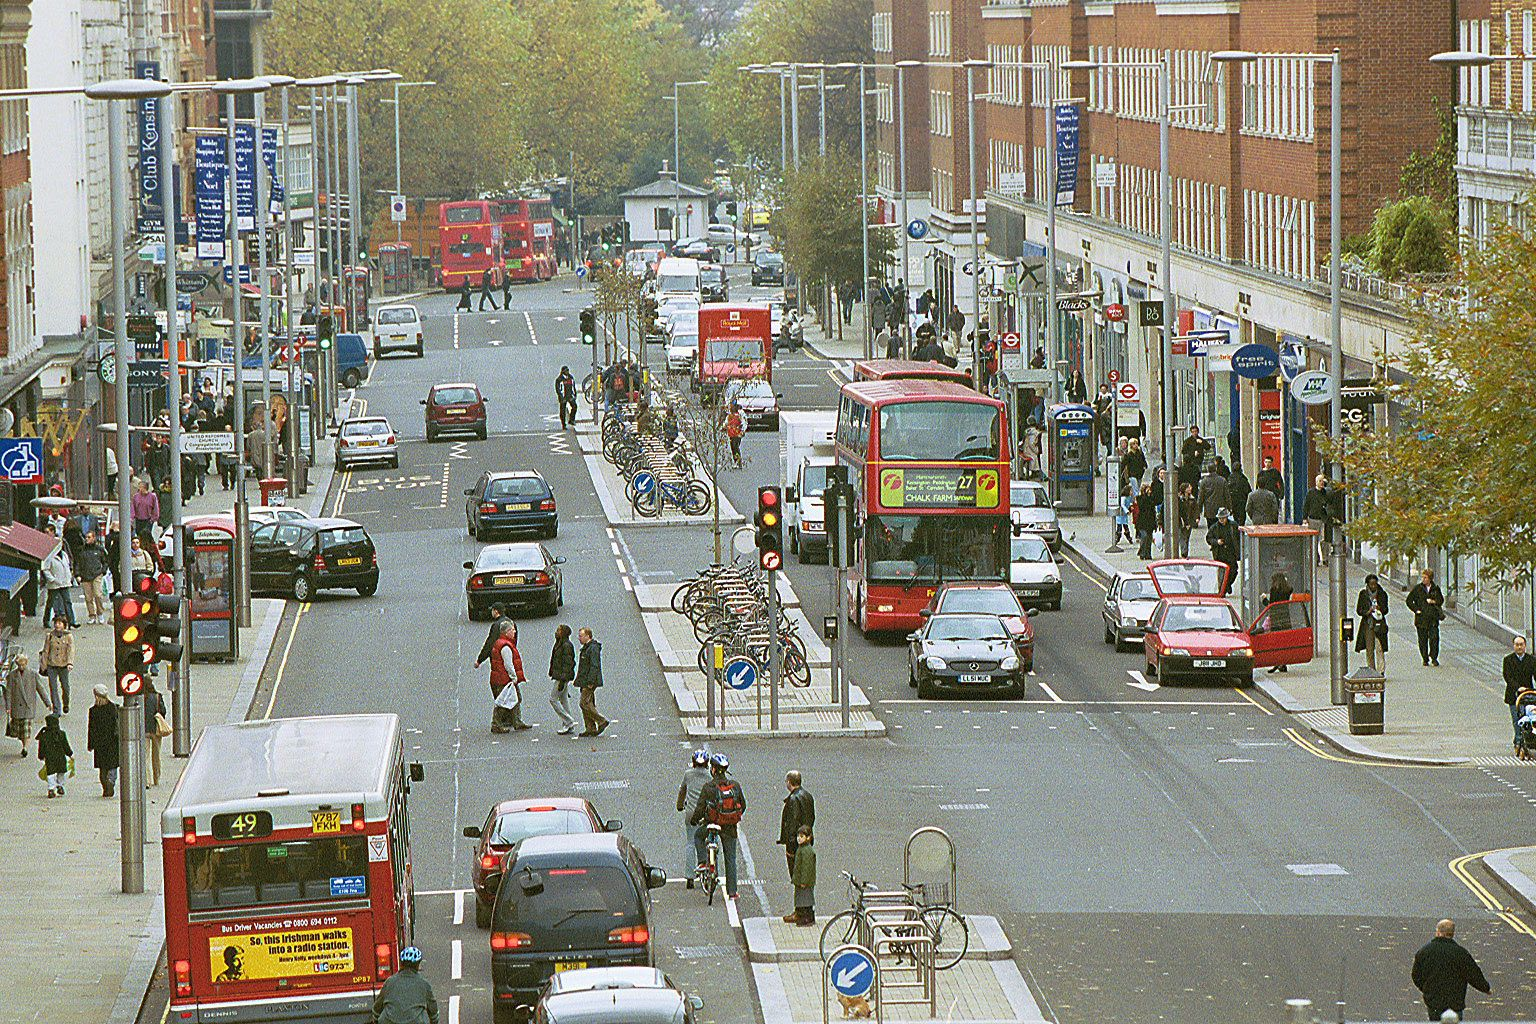 Kensington High Street, London. An elegant and functional city street. Photo: ©RBK&C